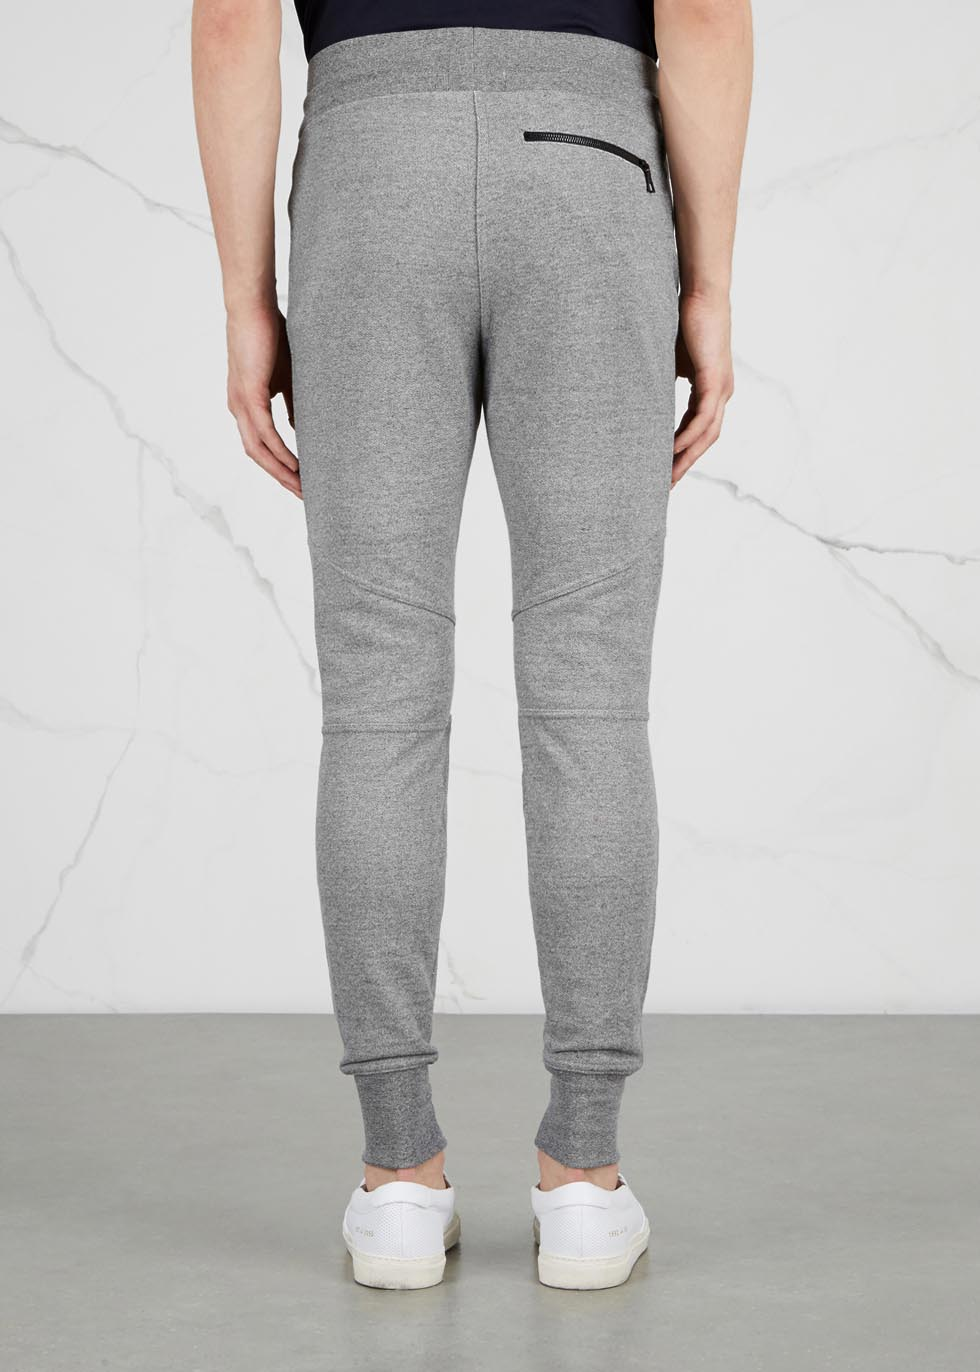 Escobar grey jersey jogging trousers - John Elliott